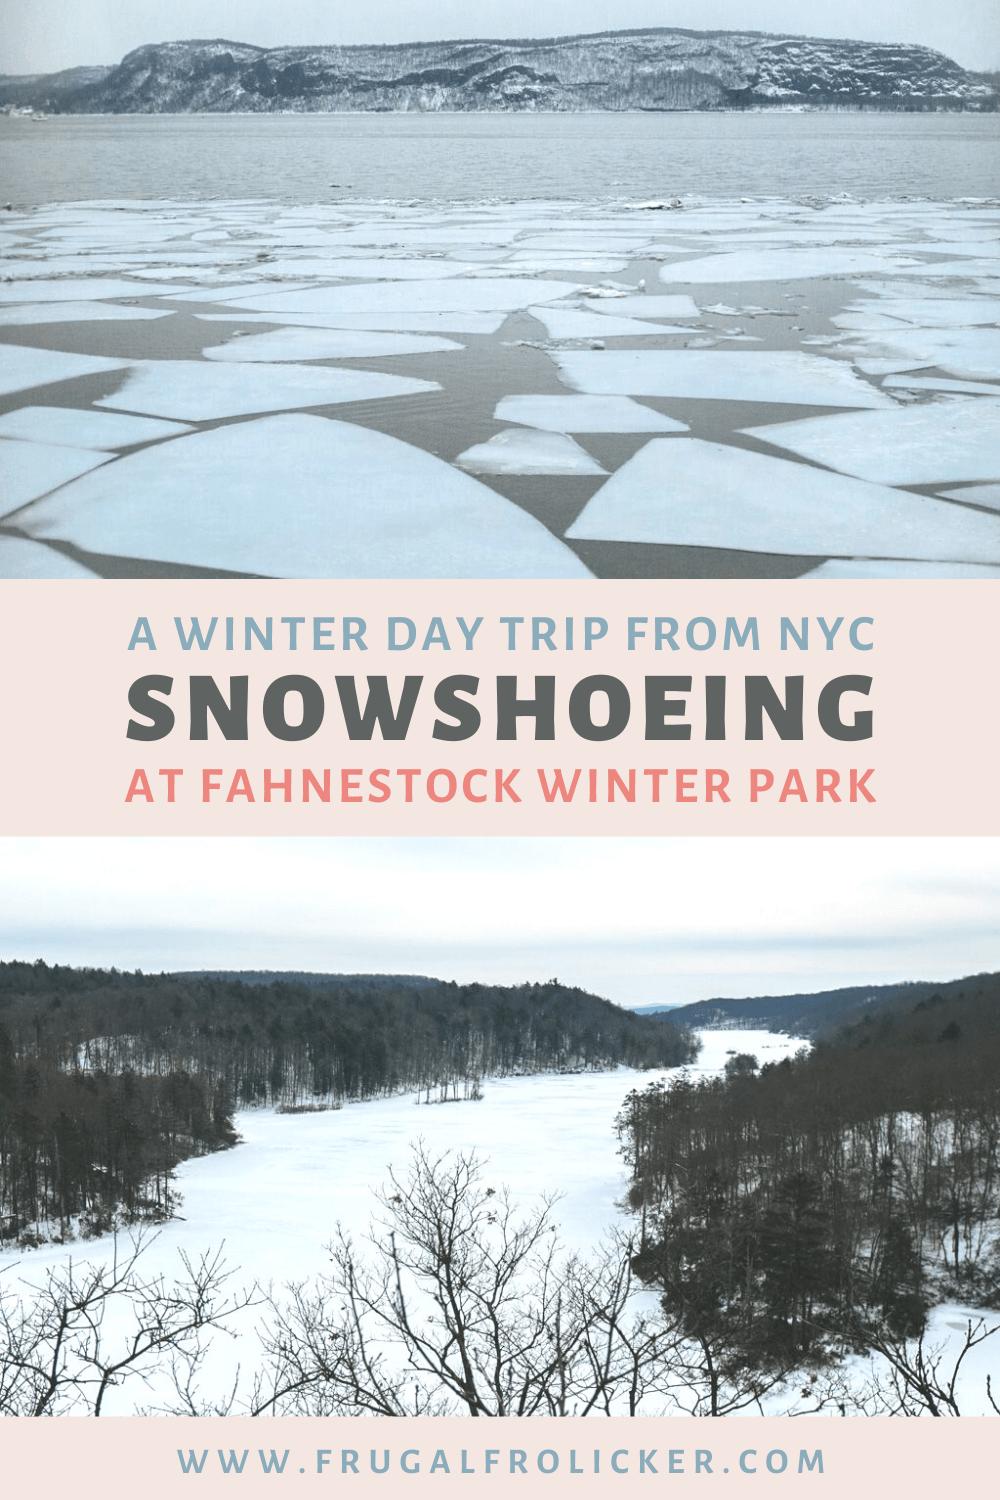 Where to go snowshoeing near NYC